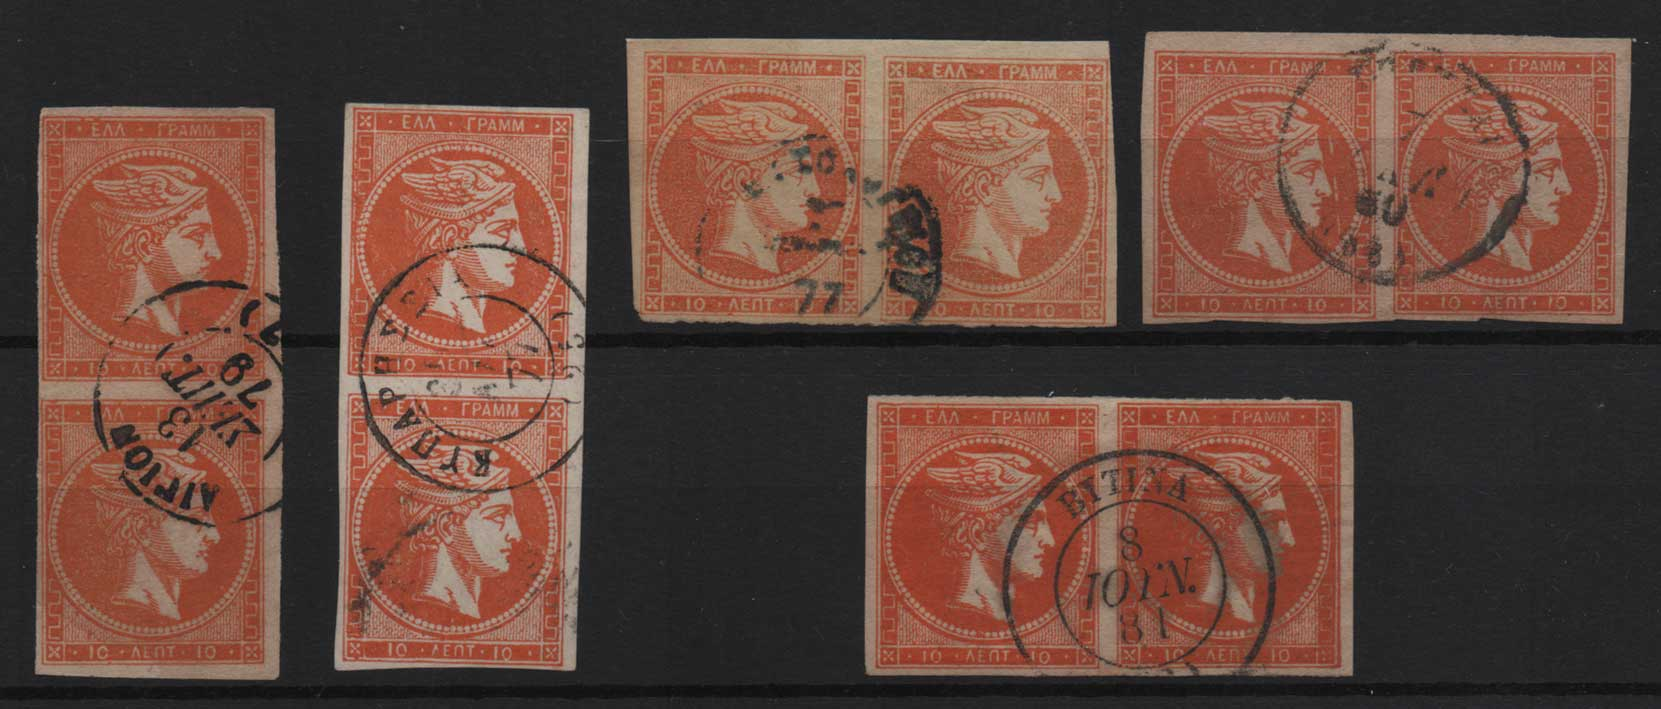 Lot 33 - -  LARGE HERMES HEAD large hermes head -  Athens Auctions Public Auction 75 General Stamp Sale